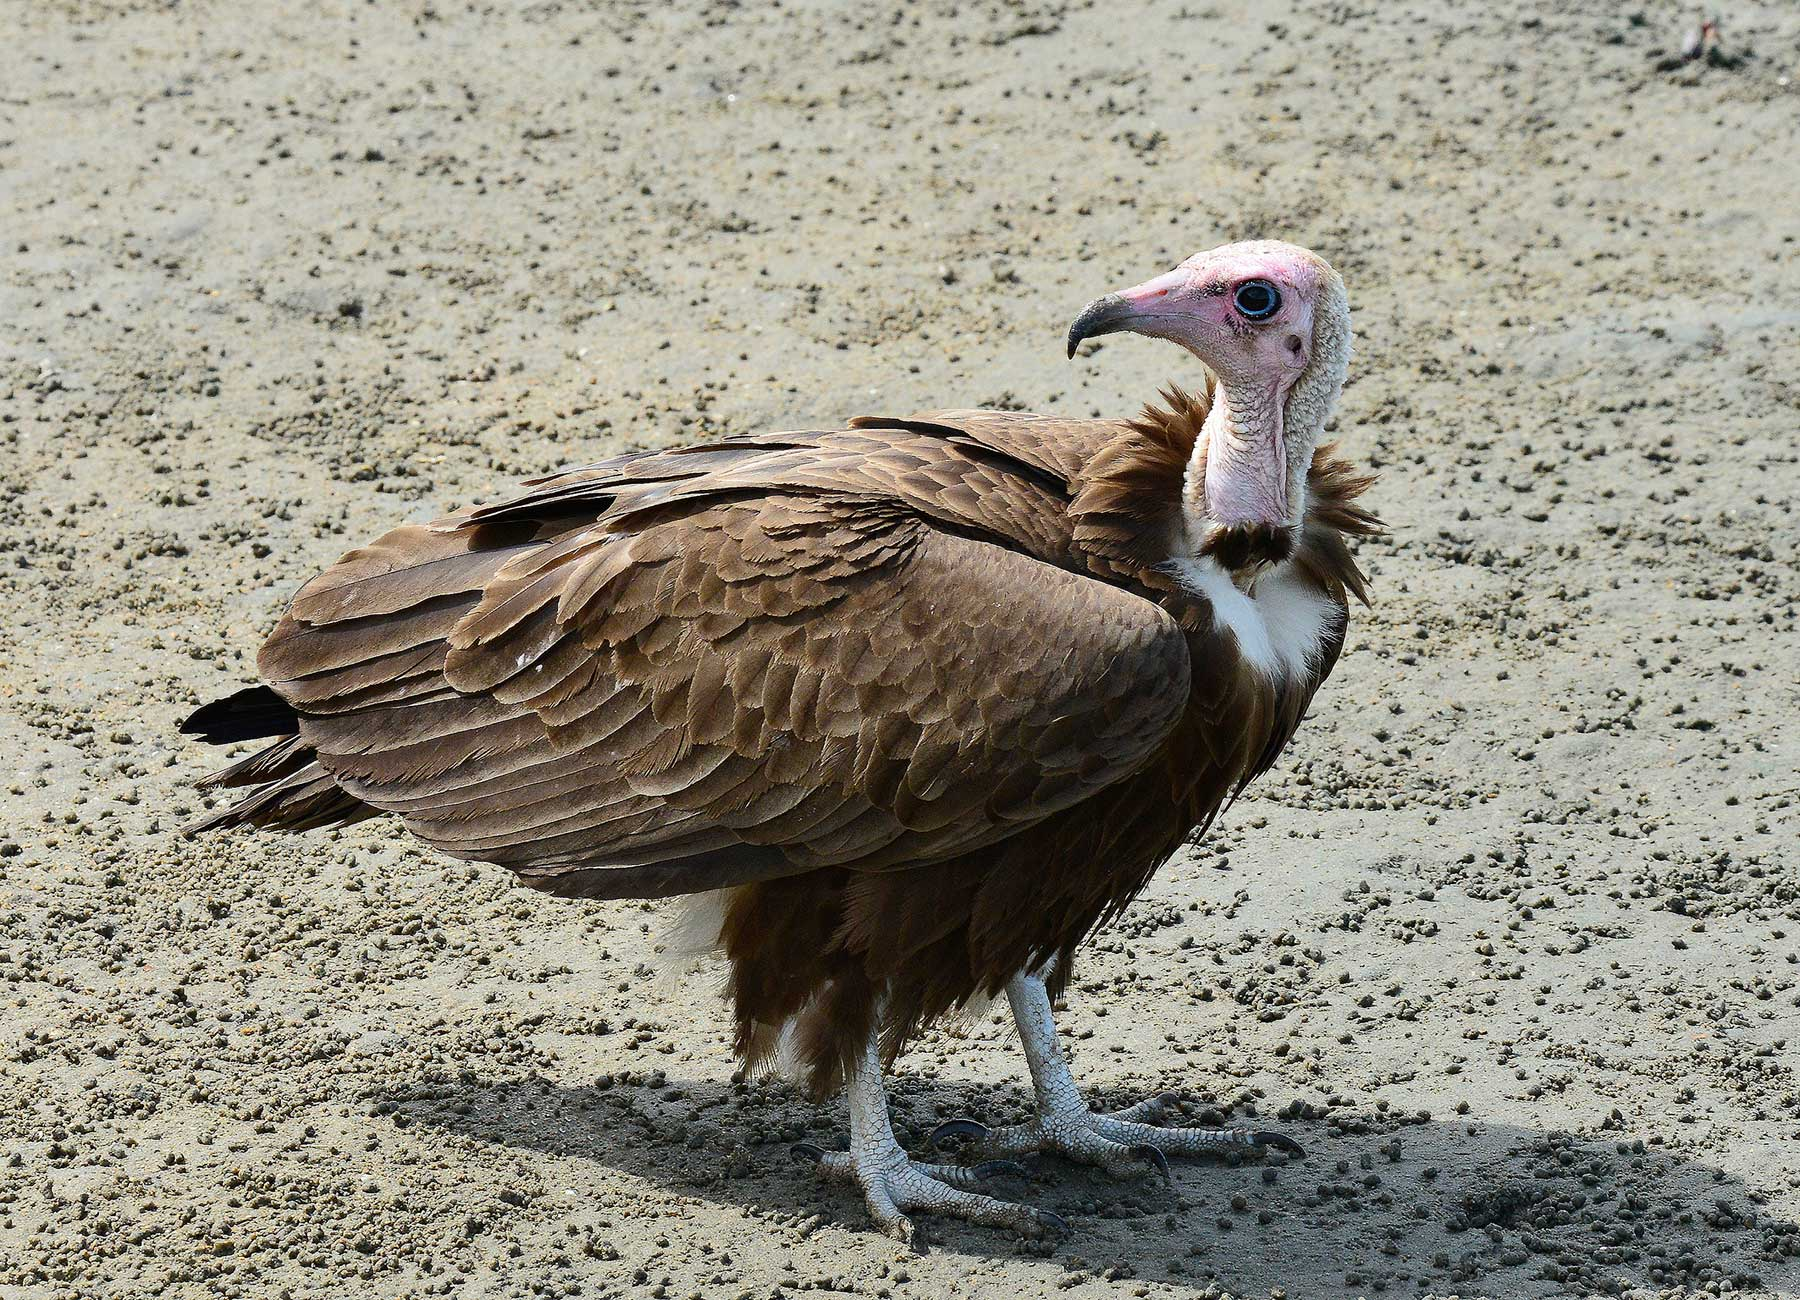 Hooded Vulture in West Africa by Tomas Ache